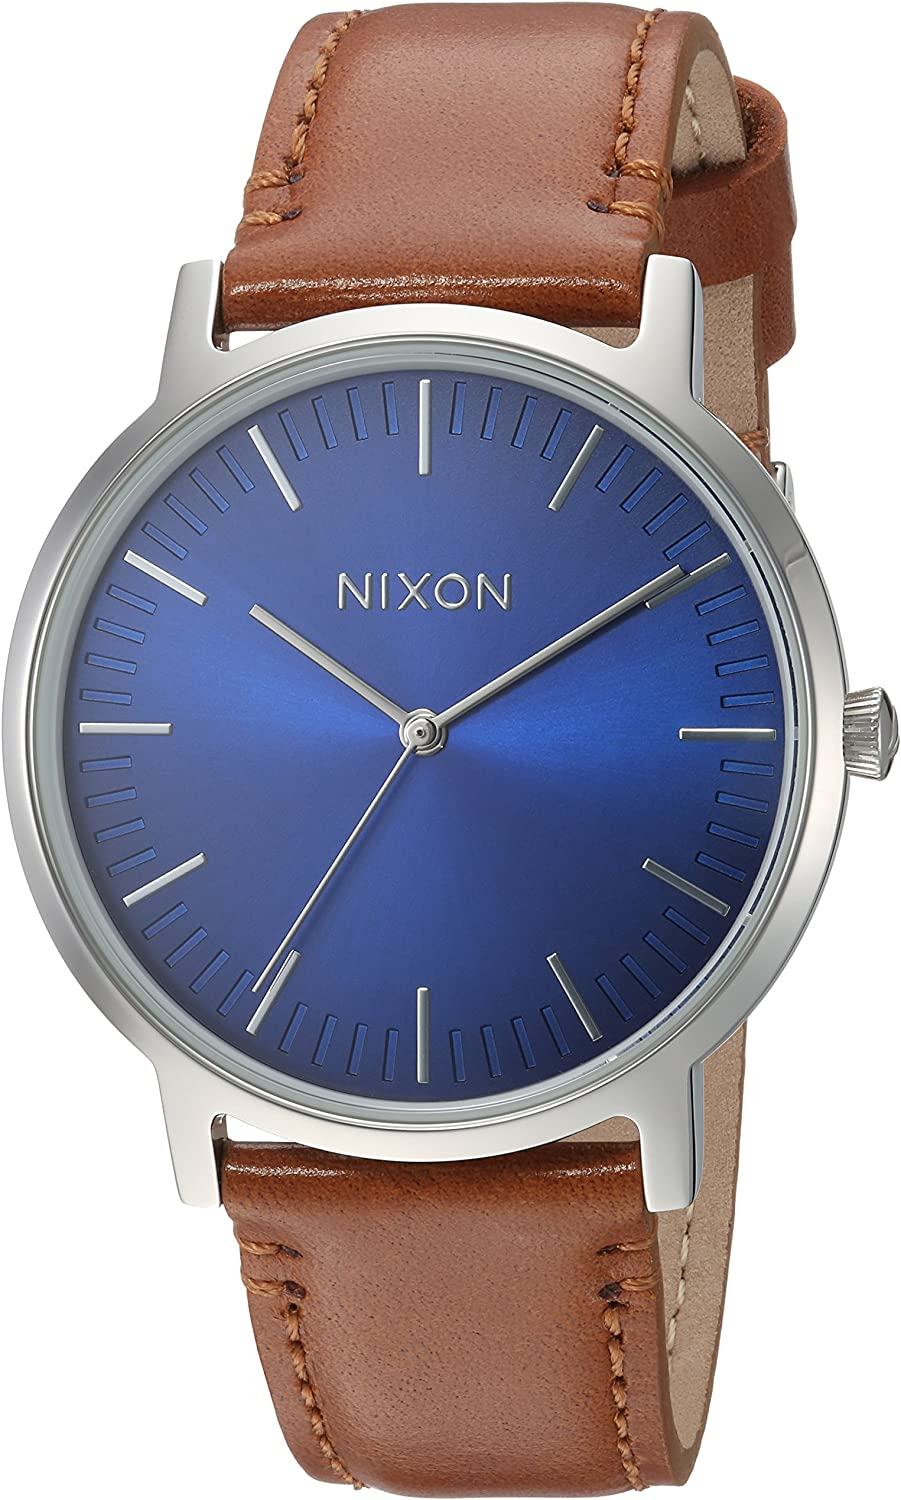 Nixon Men s Porter Stainless Steel Japanese-Quartz Watch with Leather Calfskin Strap, Black, 20 Model A10582694